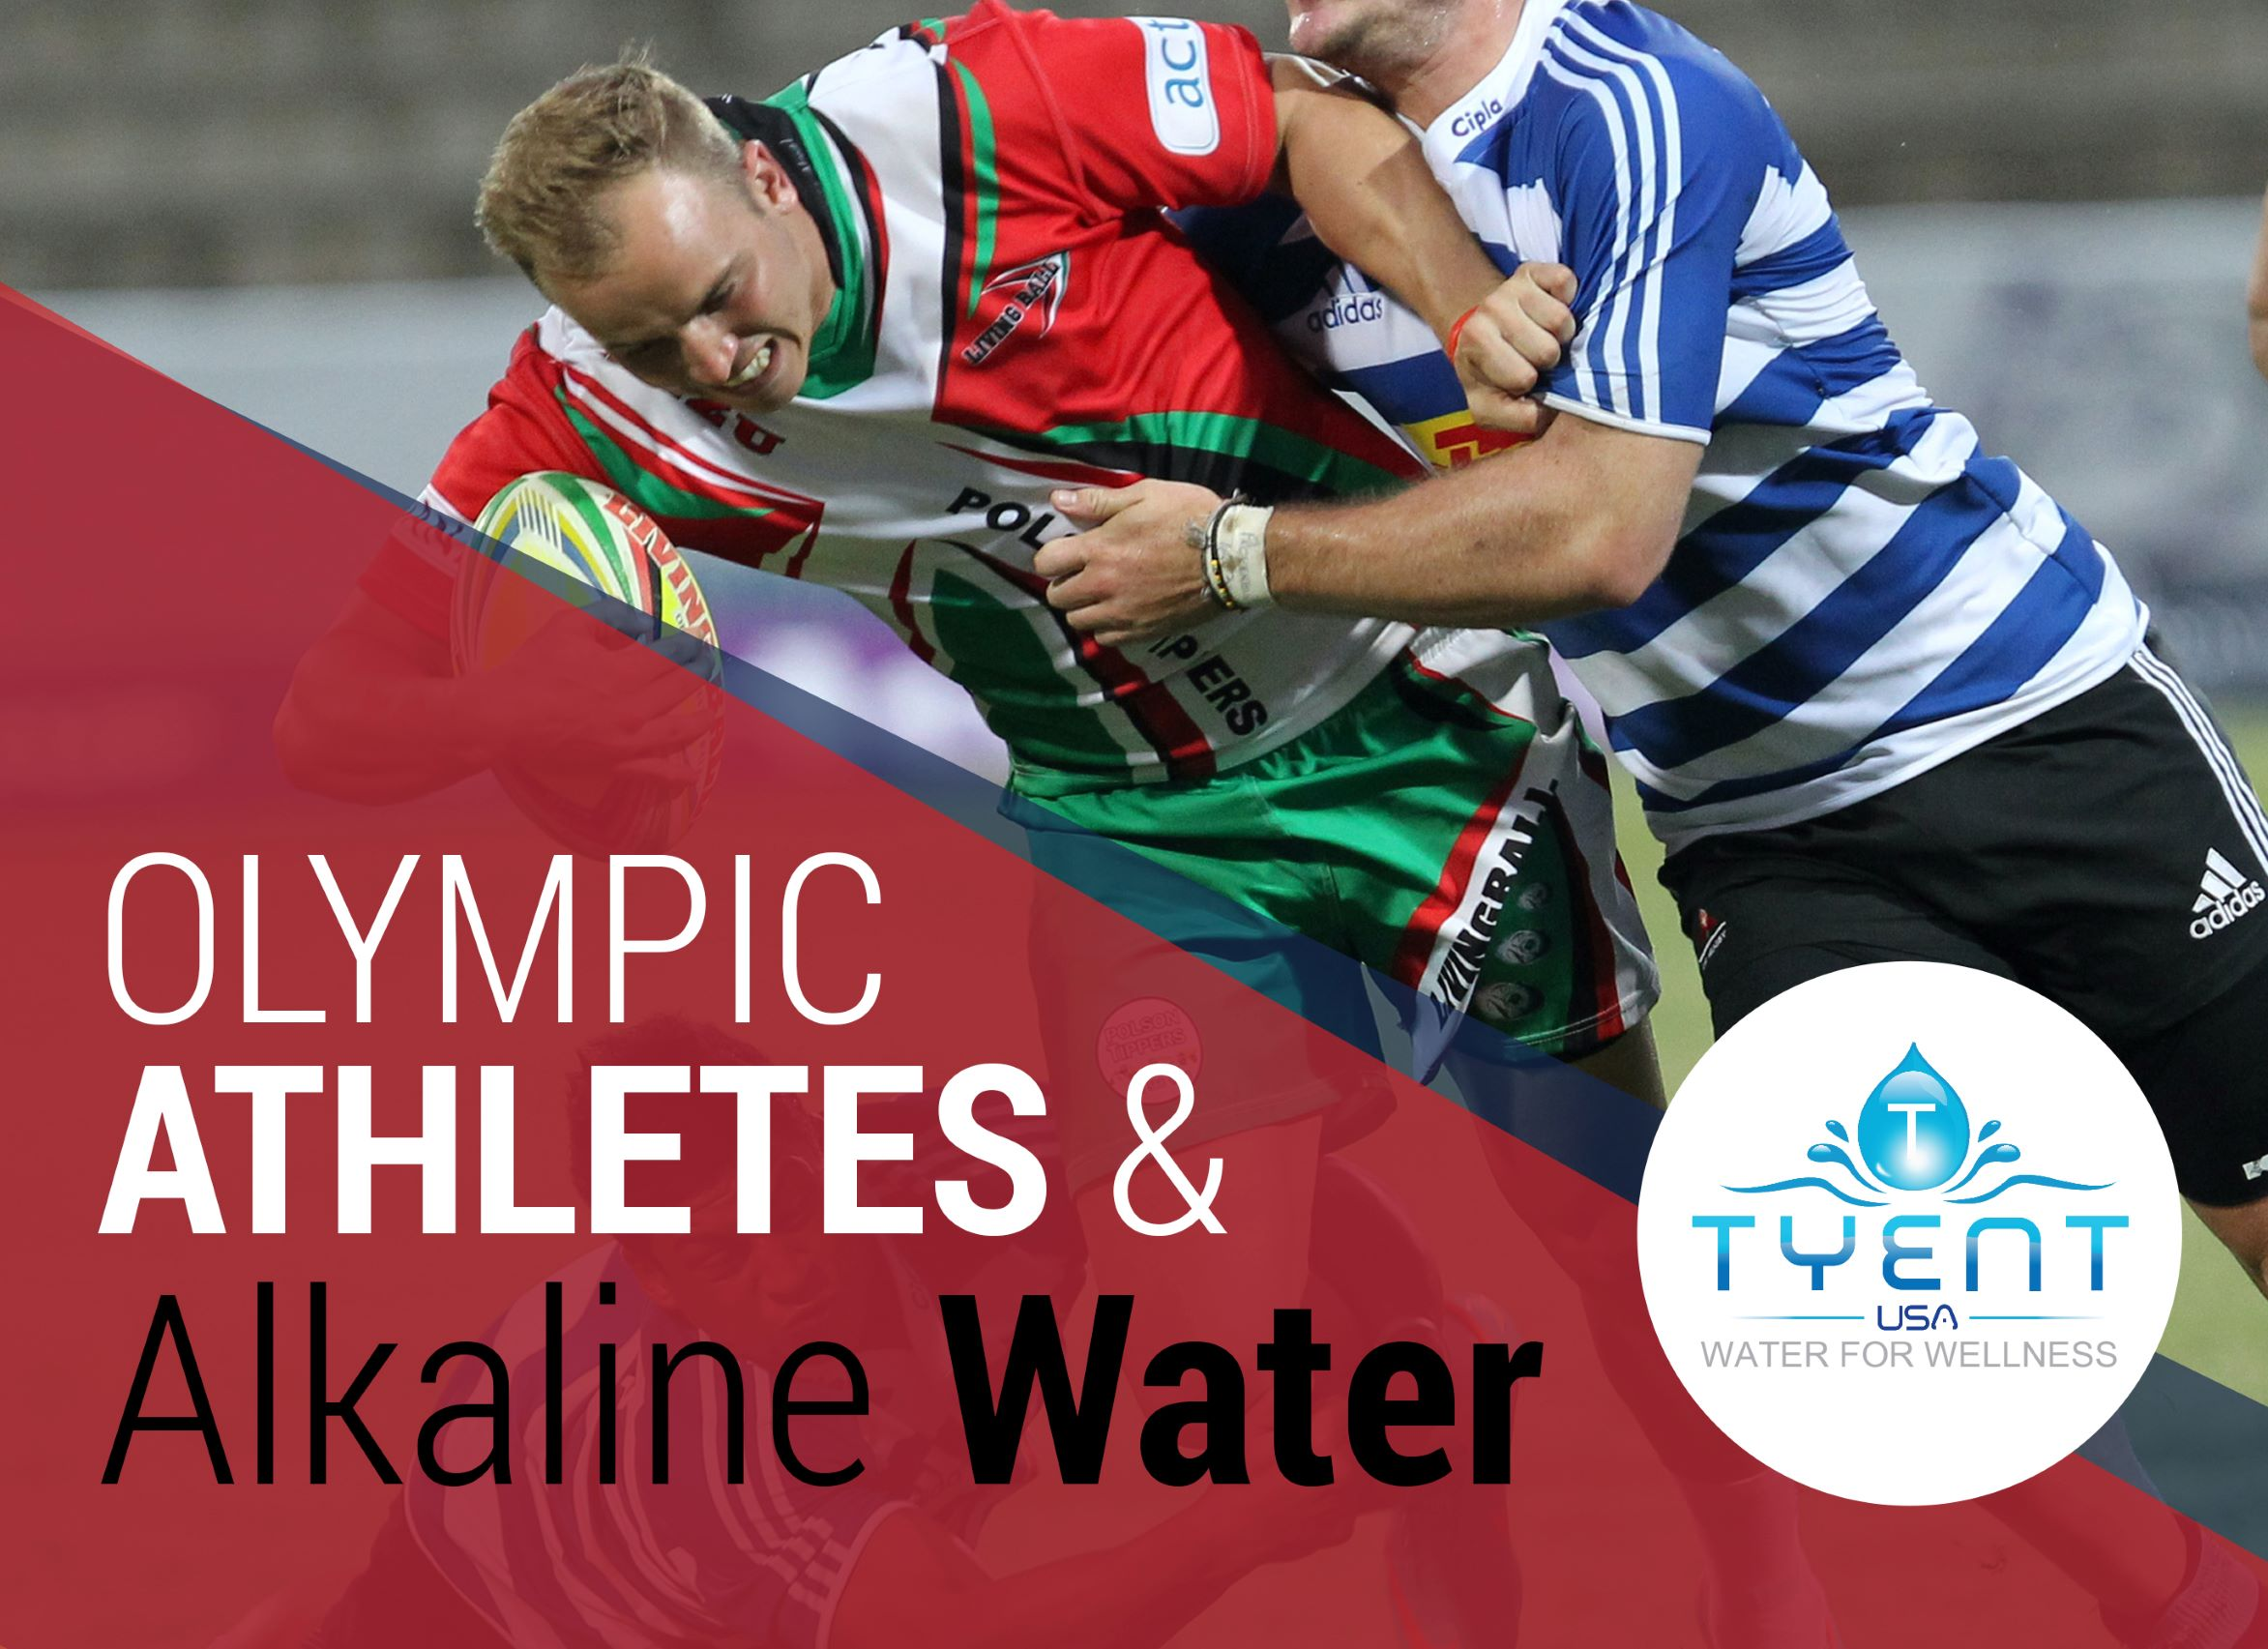 Olympic Athletes and Alkaline Water